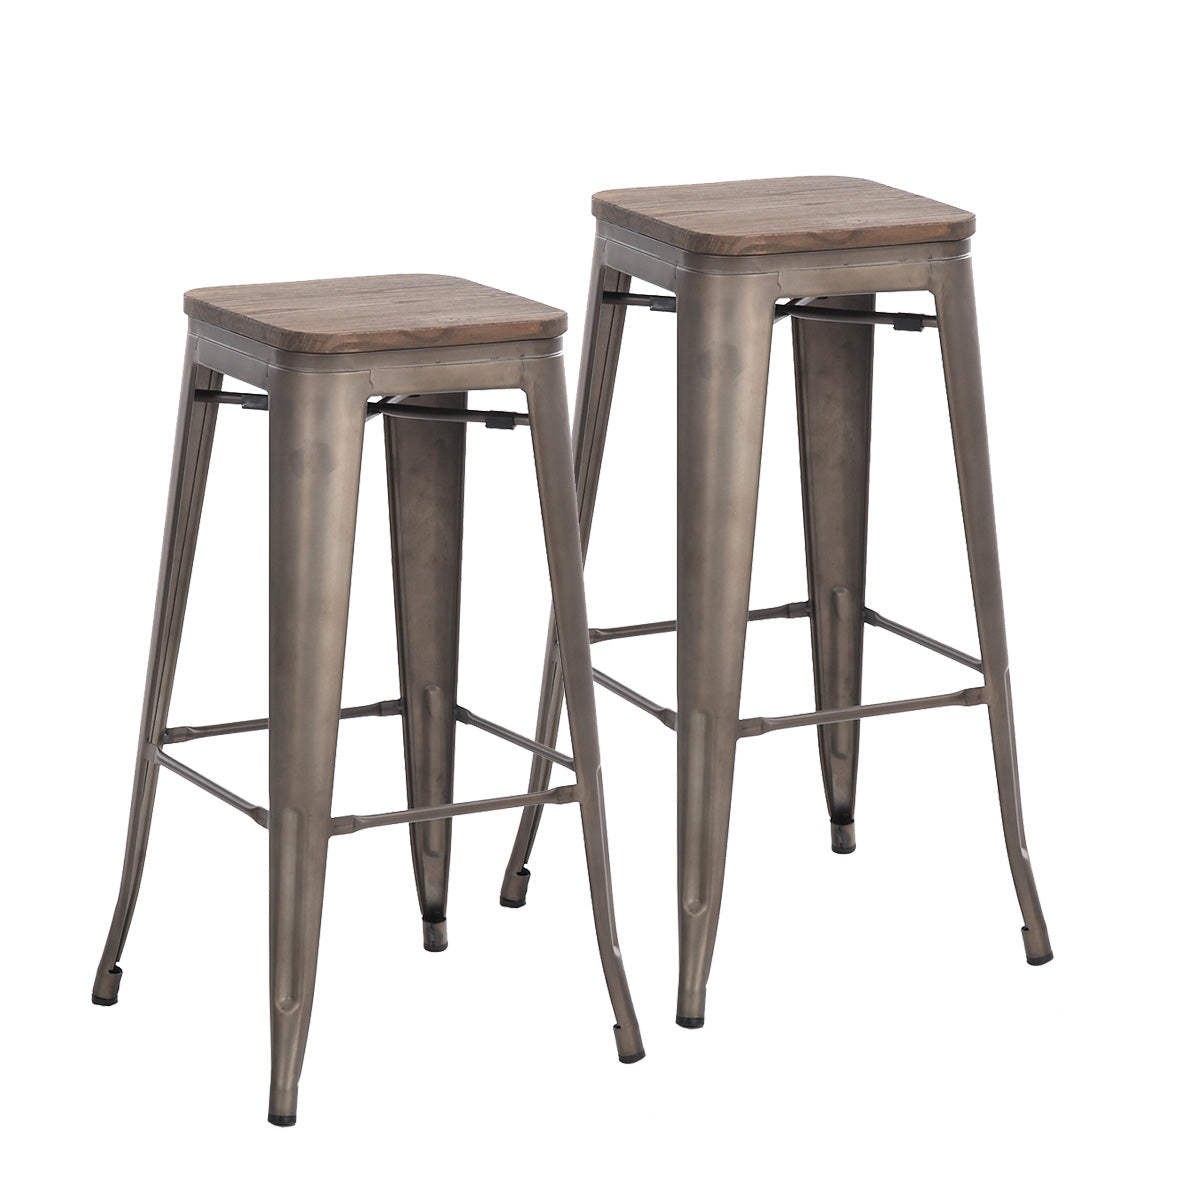 Remarkable 30 Inch Bronze Metal Bar Stools With Wooden Top Set Of 2 Theyellowbook Wood Chair Design Ideas Theyellowbookinfo